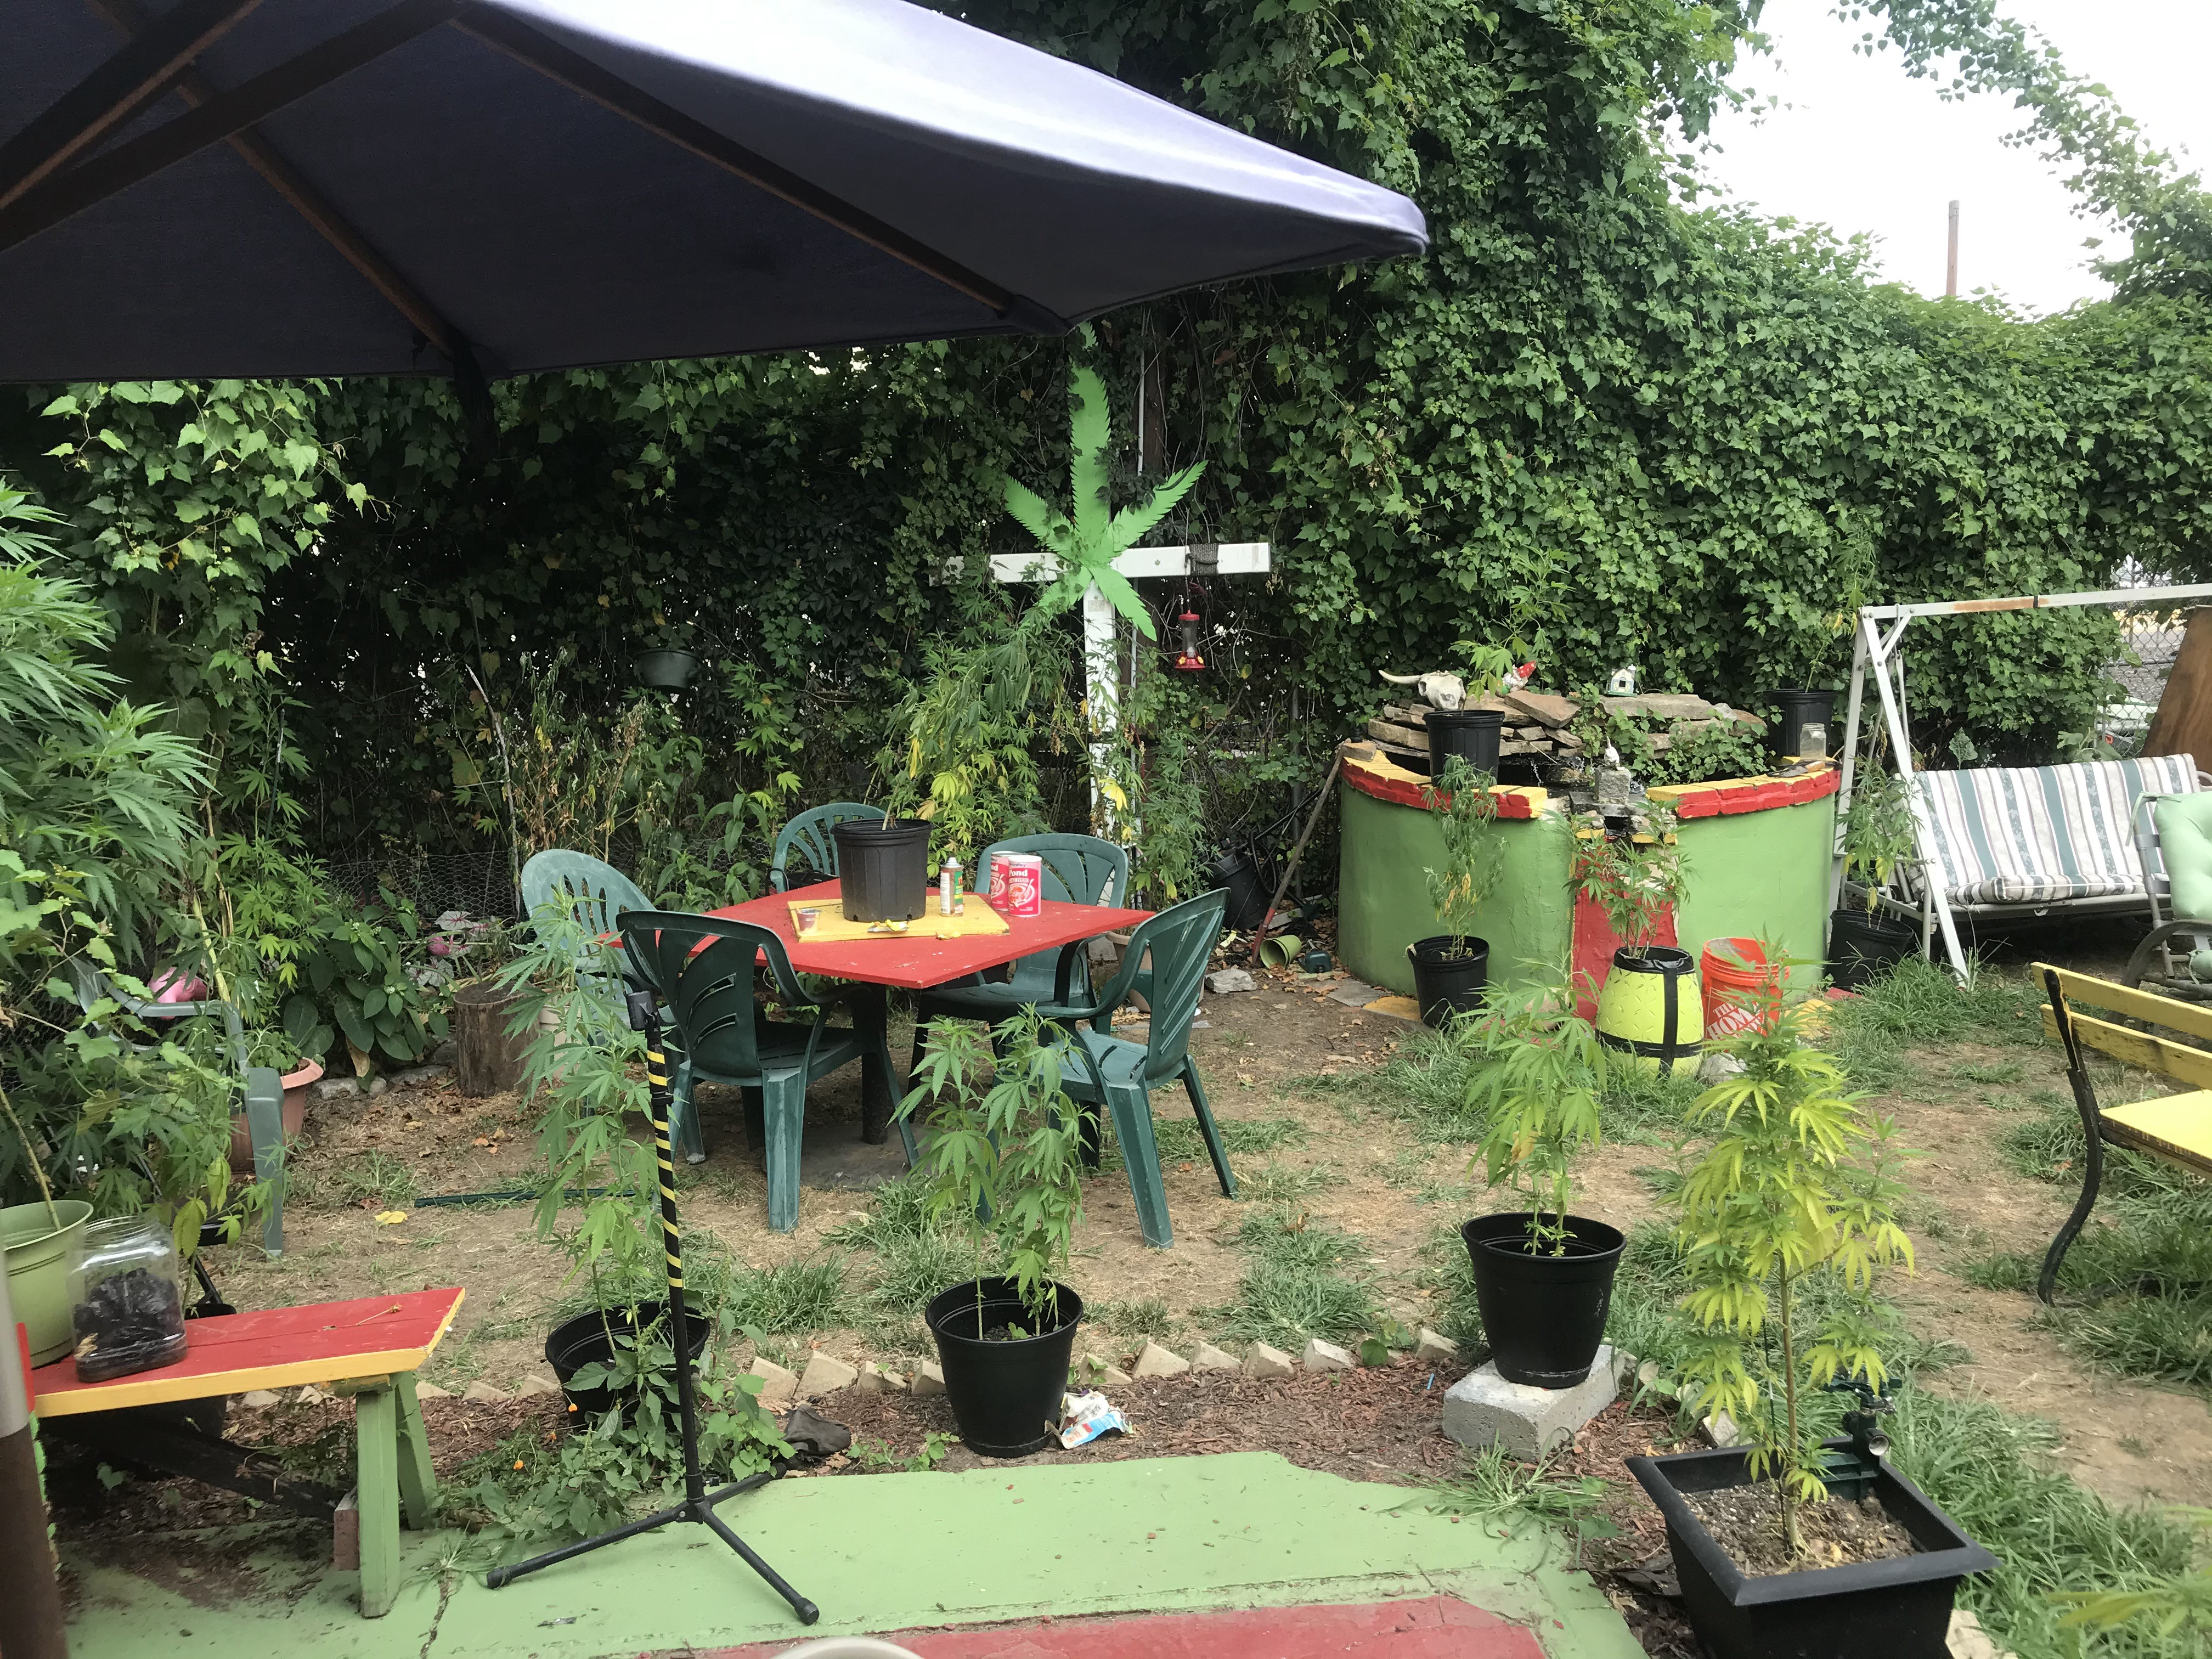 The backyard at NJ Weedman's Joint. It has places to sit, a coy pond, and various types of vegetation to admire.